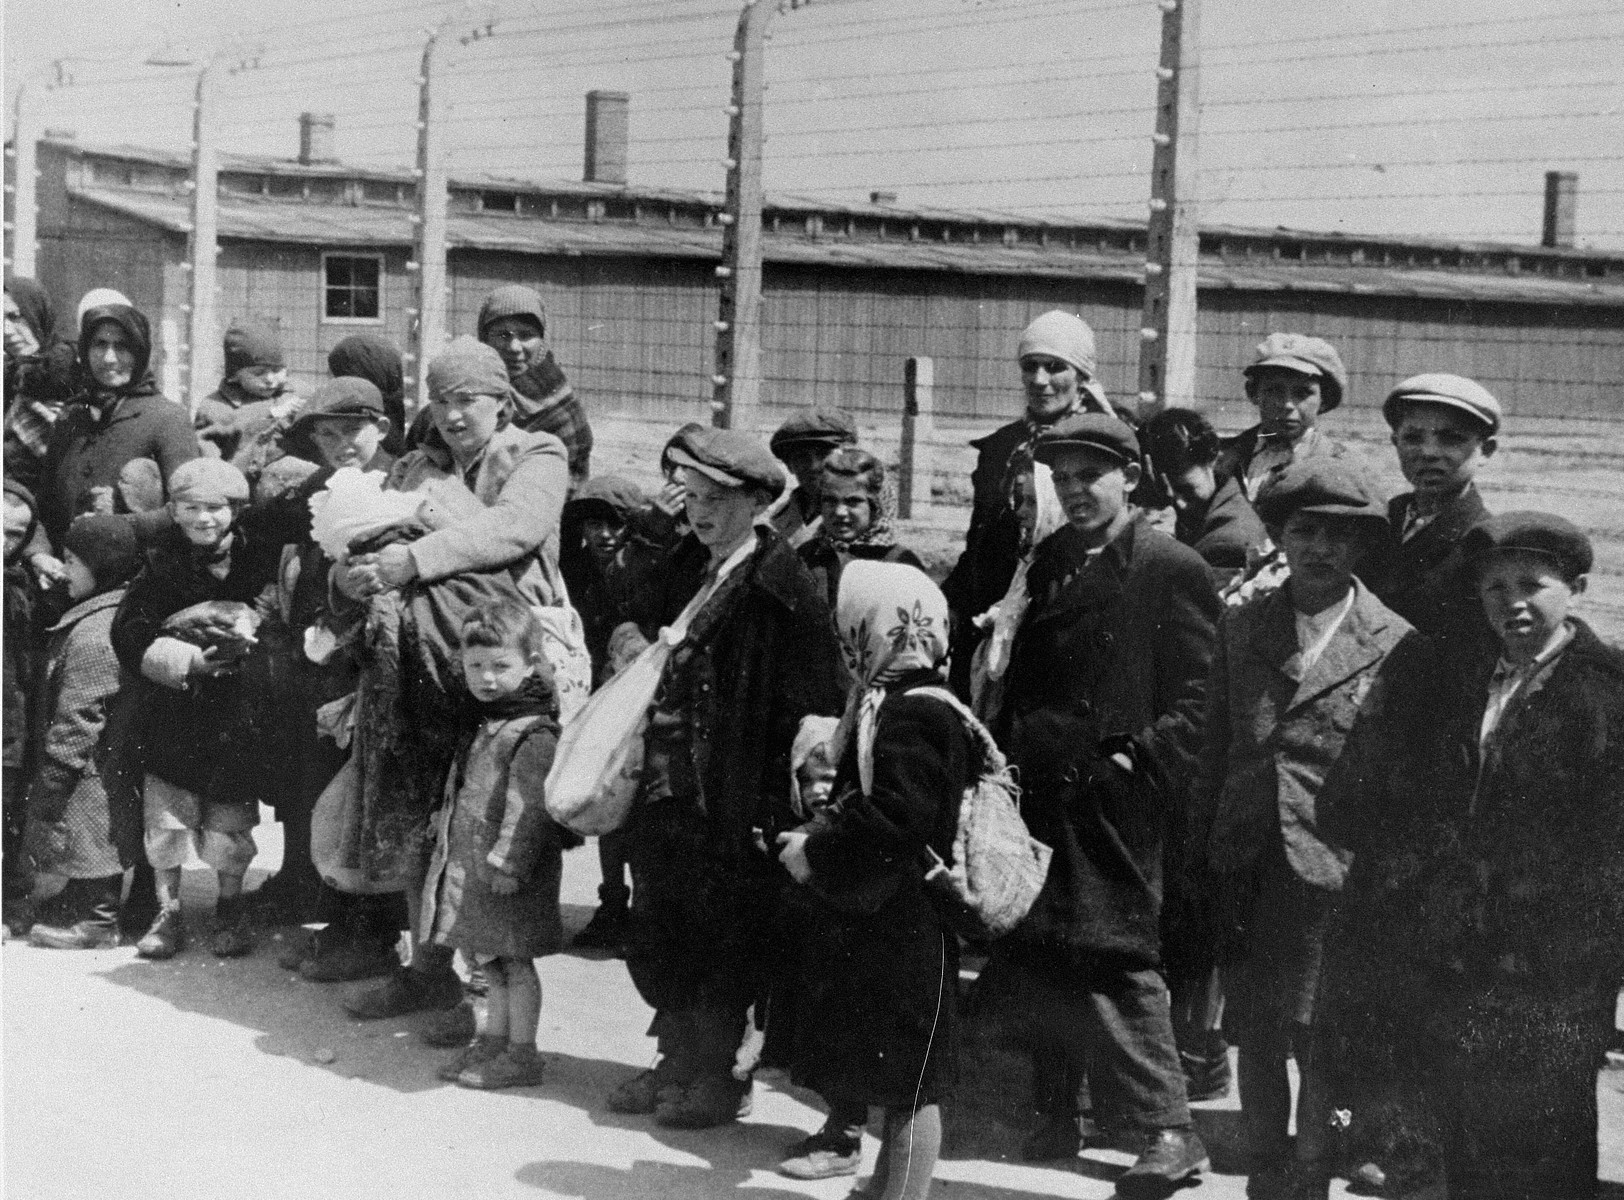 Jewish women and children from Subcarpathian Rus who have been selected for death at Auschwitz-Birkenau, wait to be taken to the gas chambers.   Bracha Junger is standing on the left.